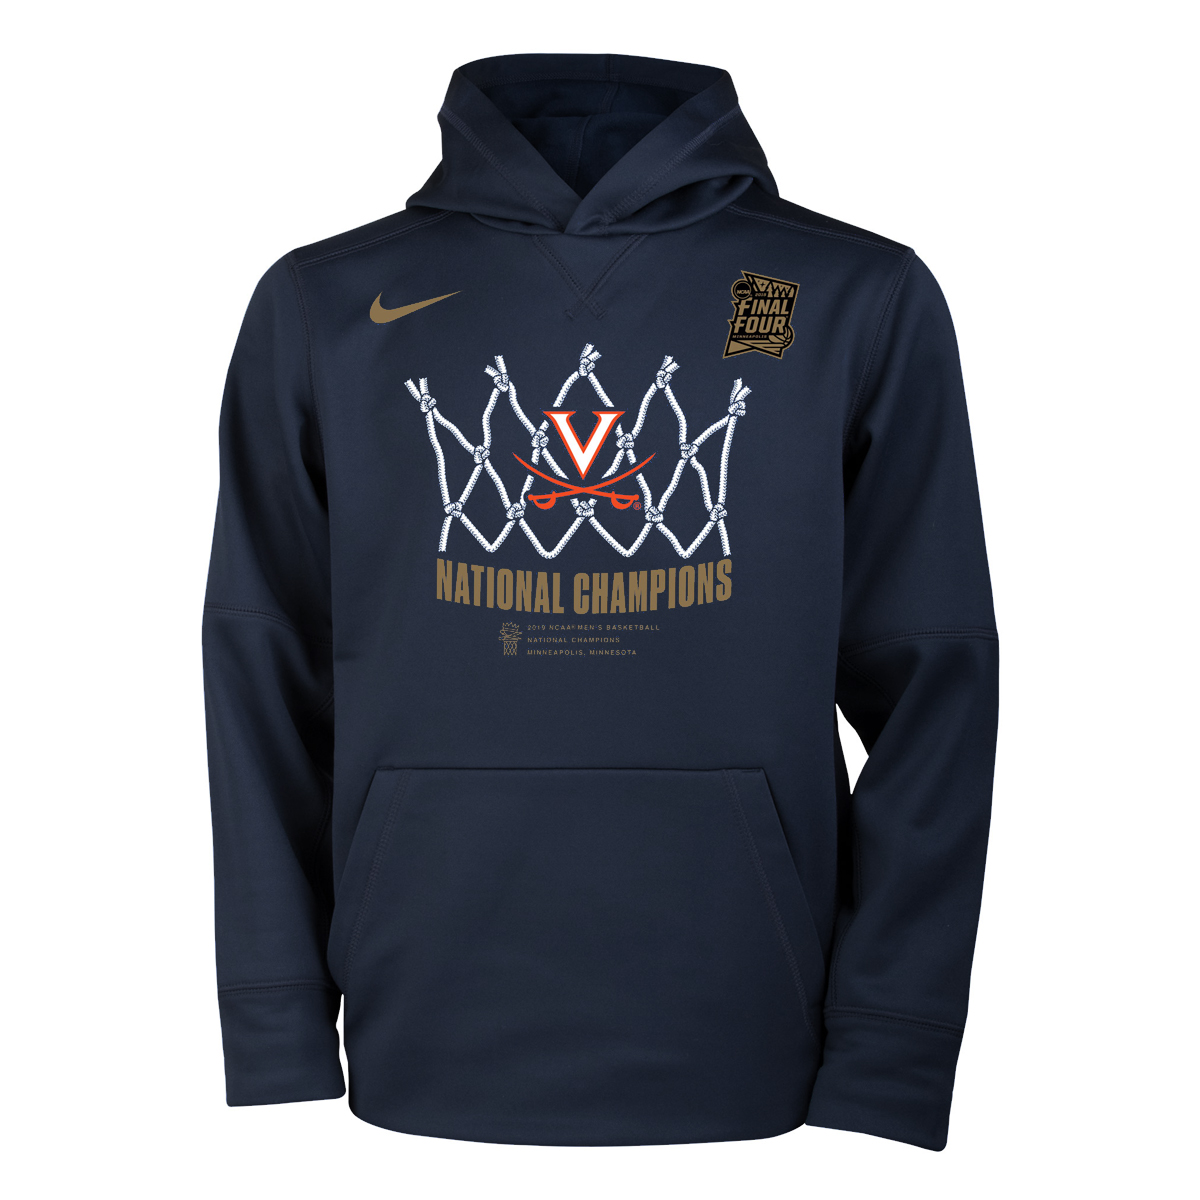 2019 National Champions Locker Room Youth Hoodie